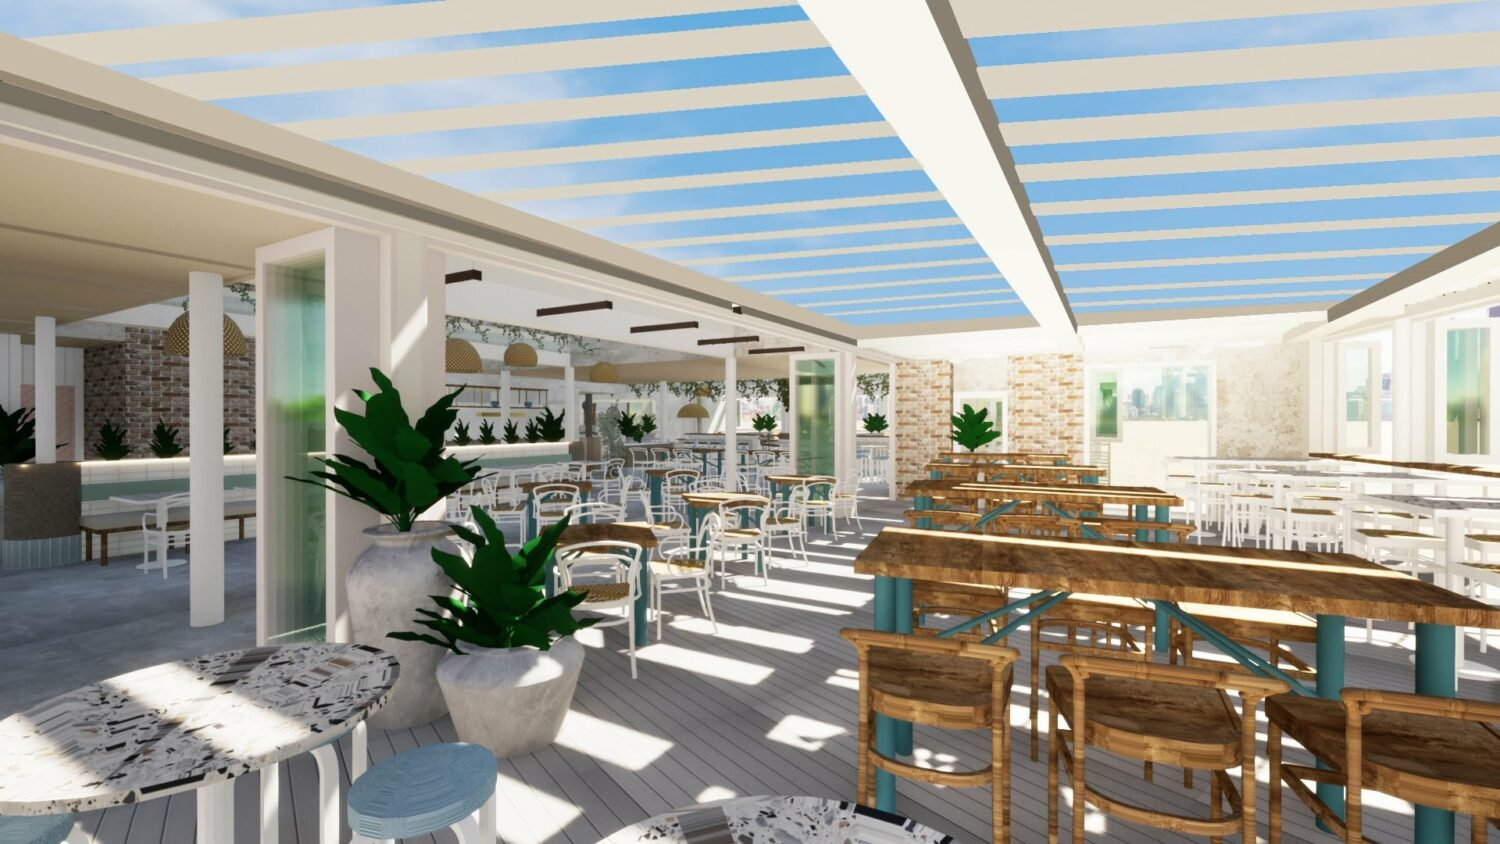 Surfers Pavilion a new waterfront oasis opening soon